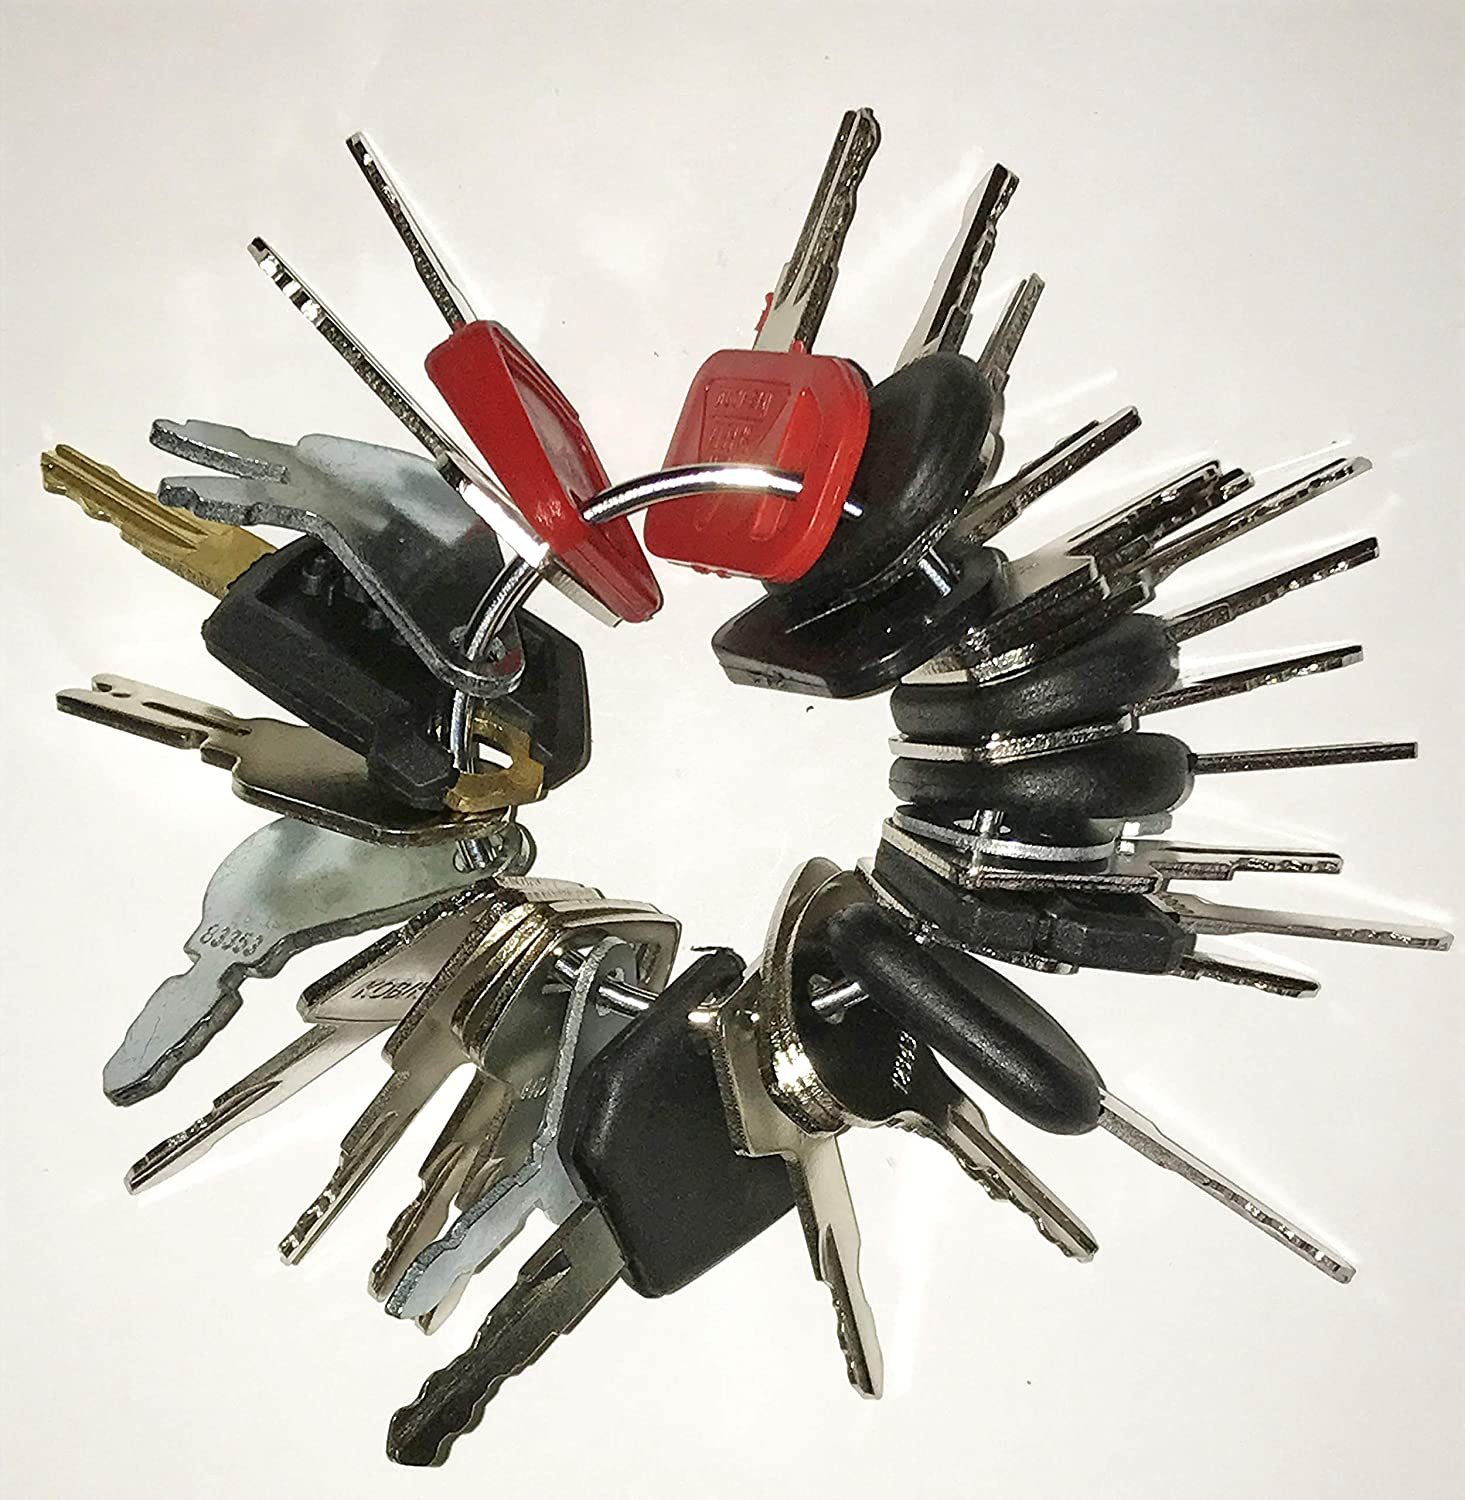 Keyman 30 Keys Heavy Equipment 30 Key Set/Construction Ignition Keys Set